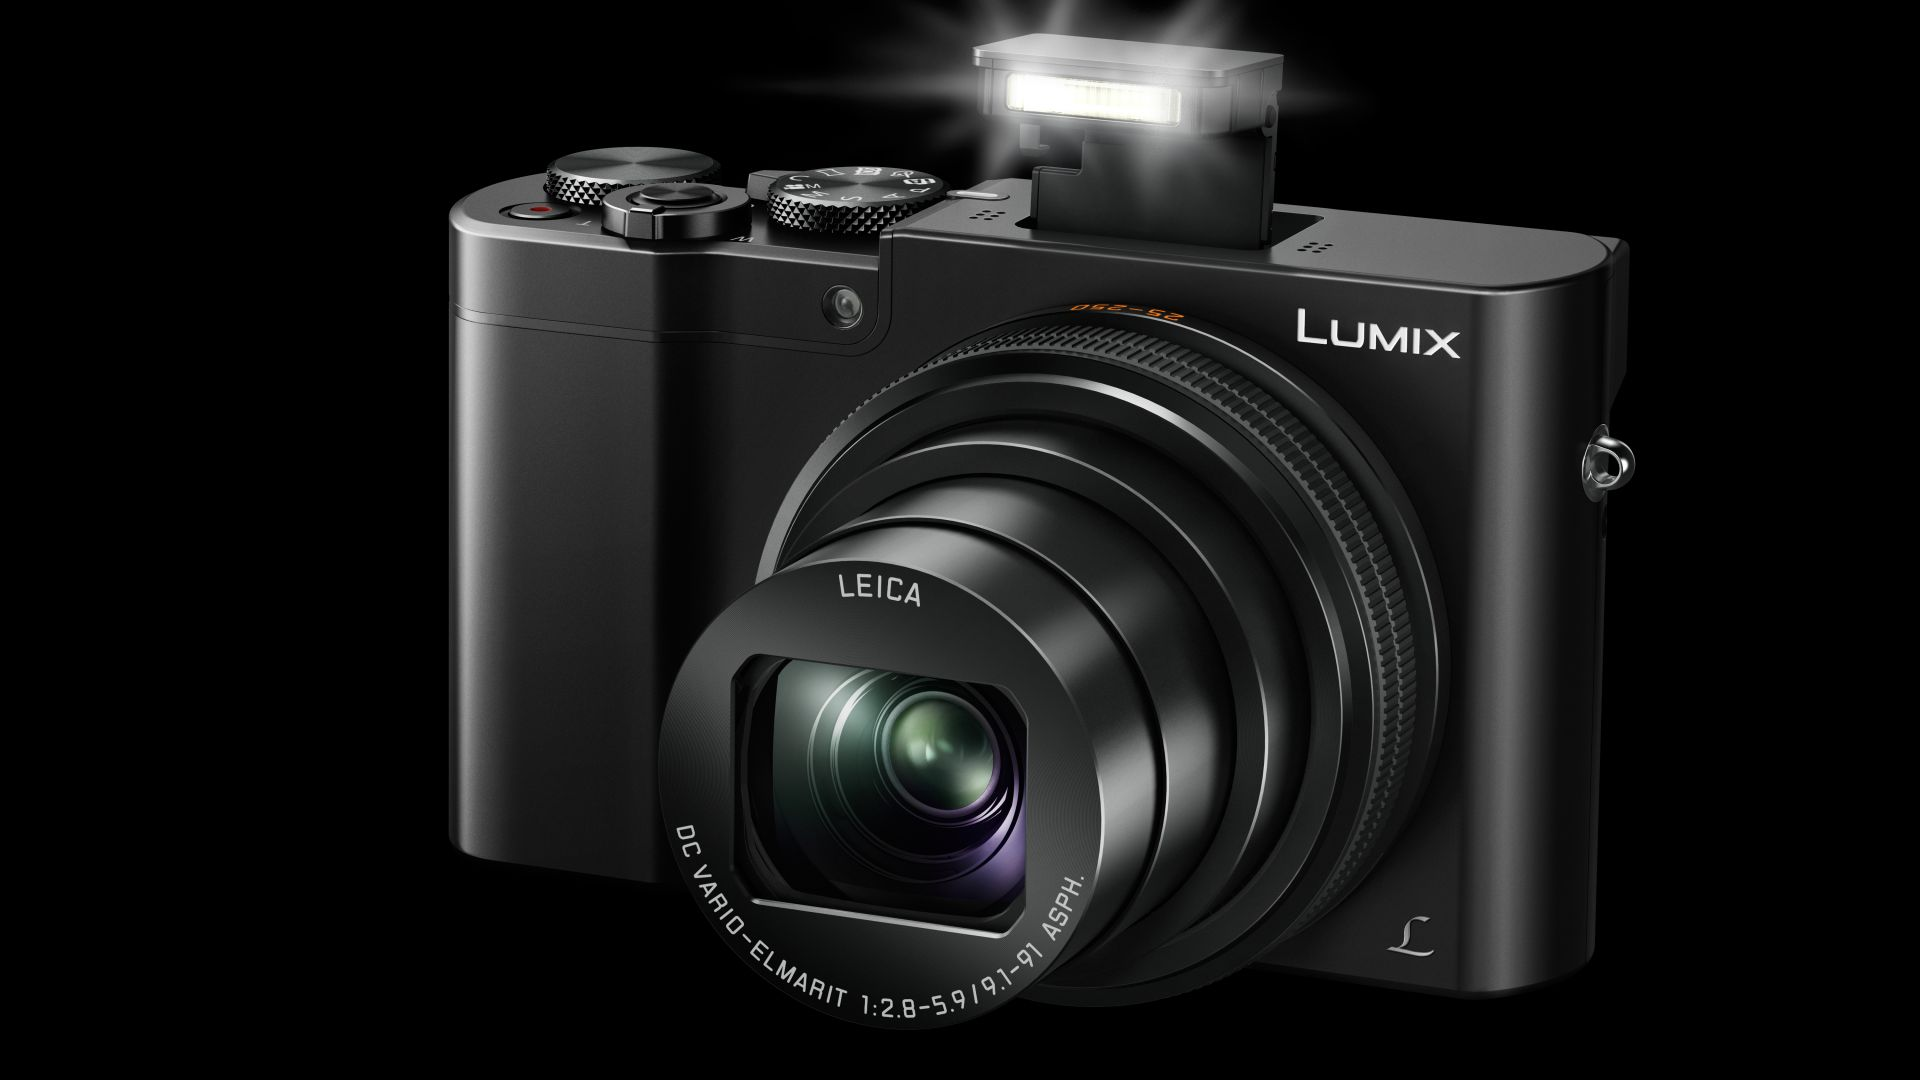 lumix camera hi tech -#main